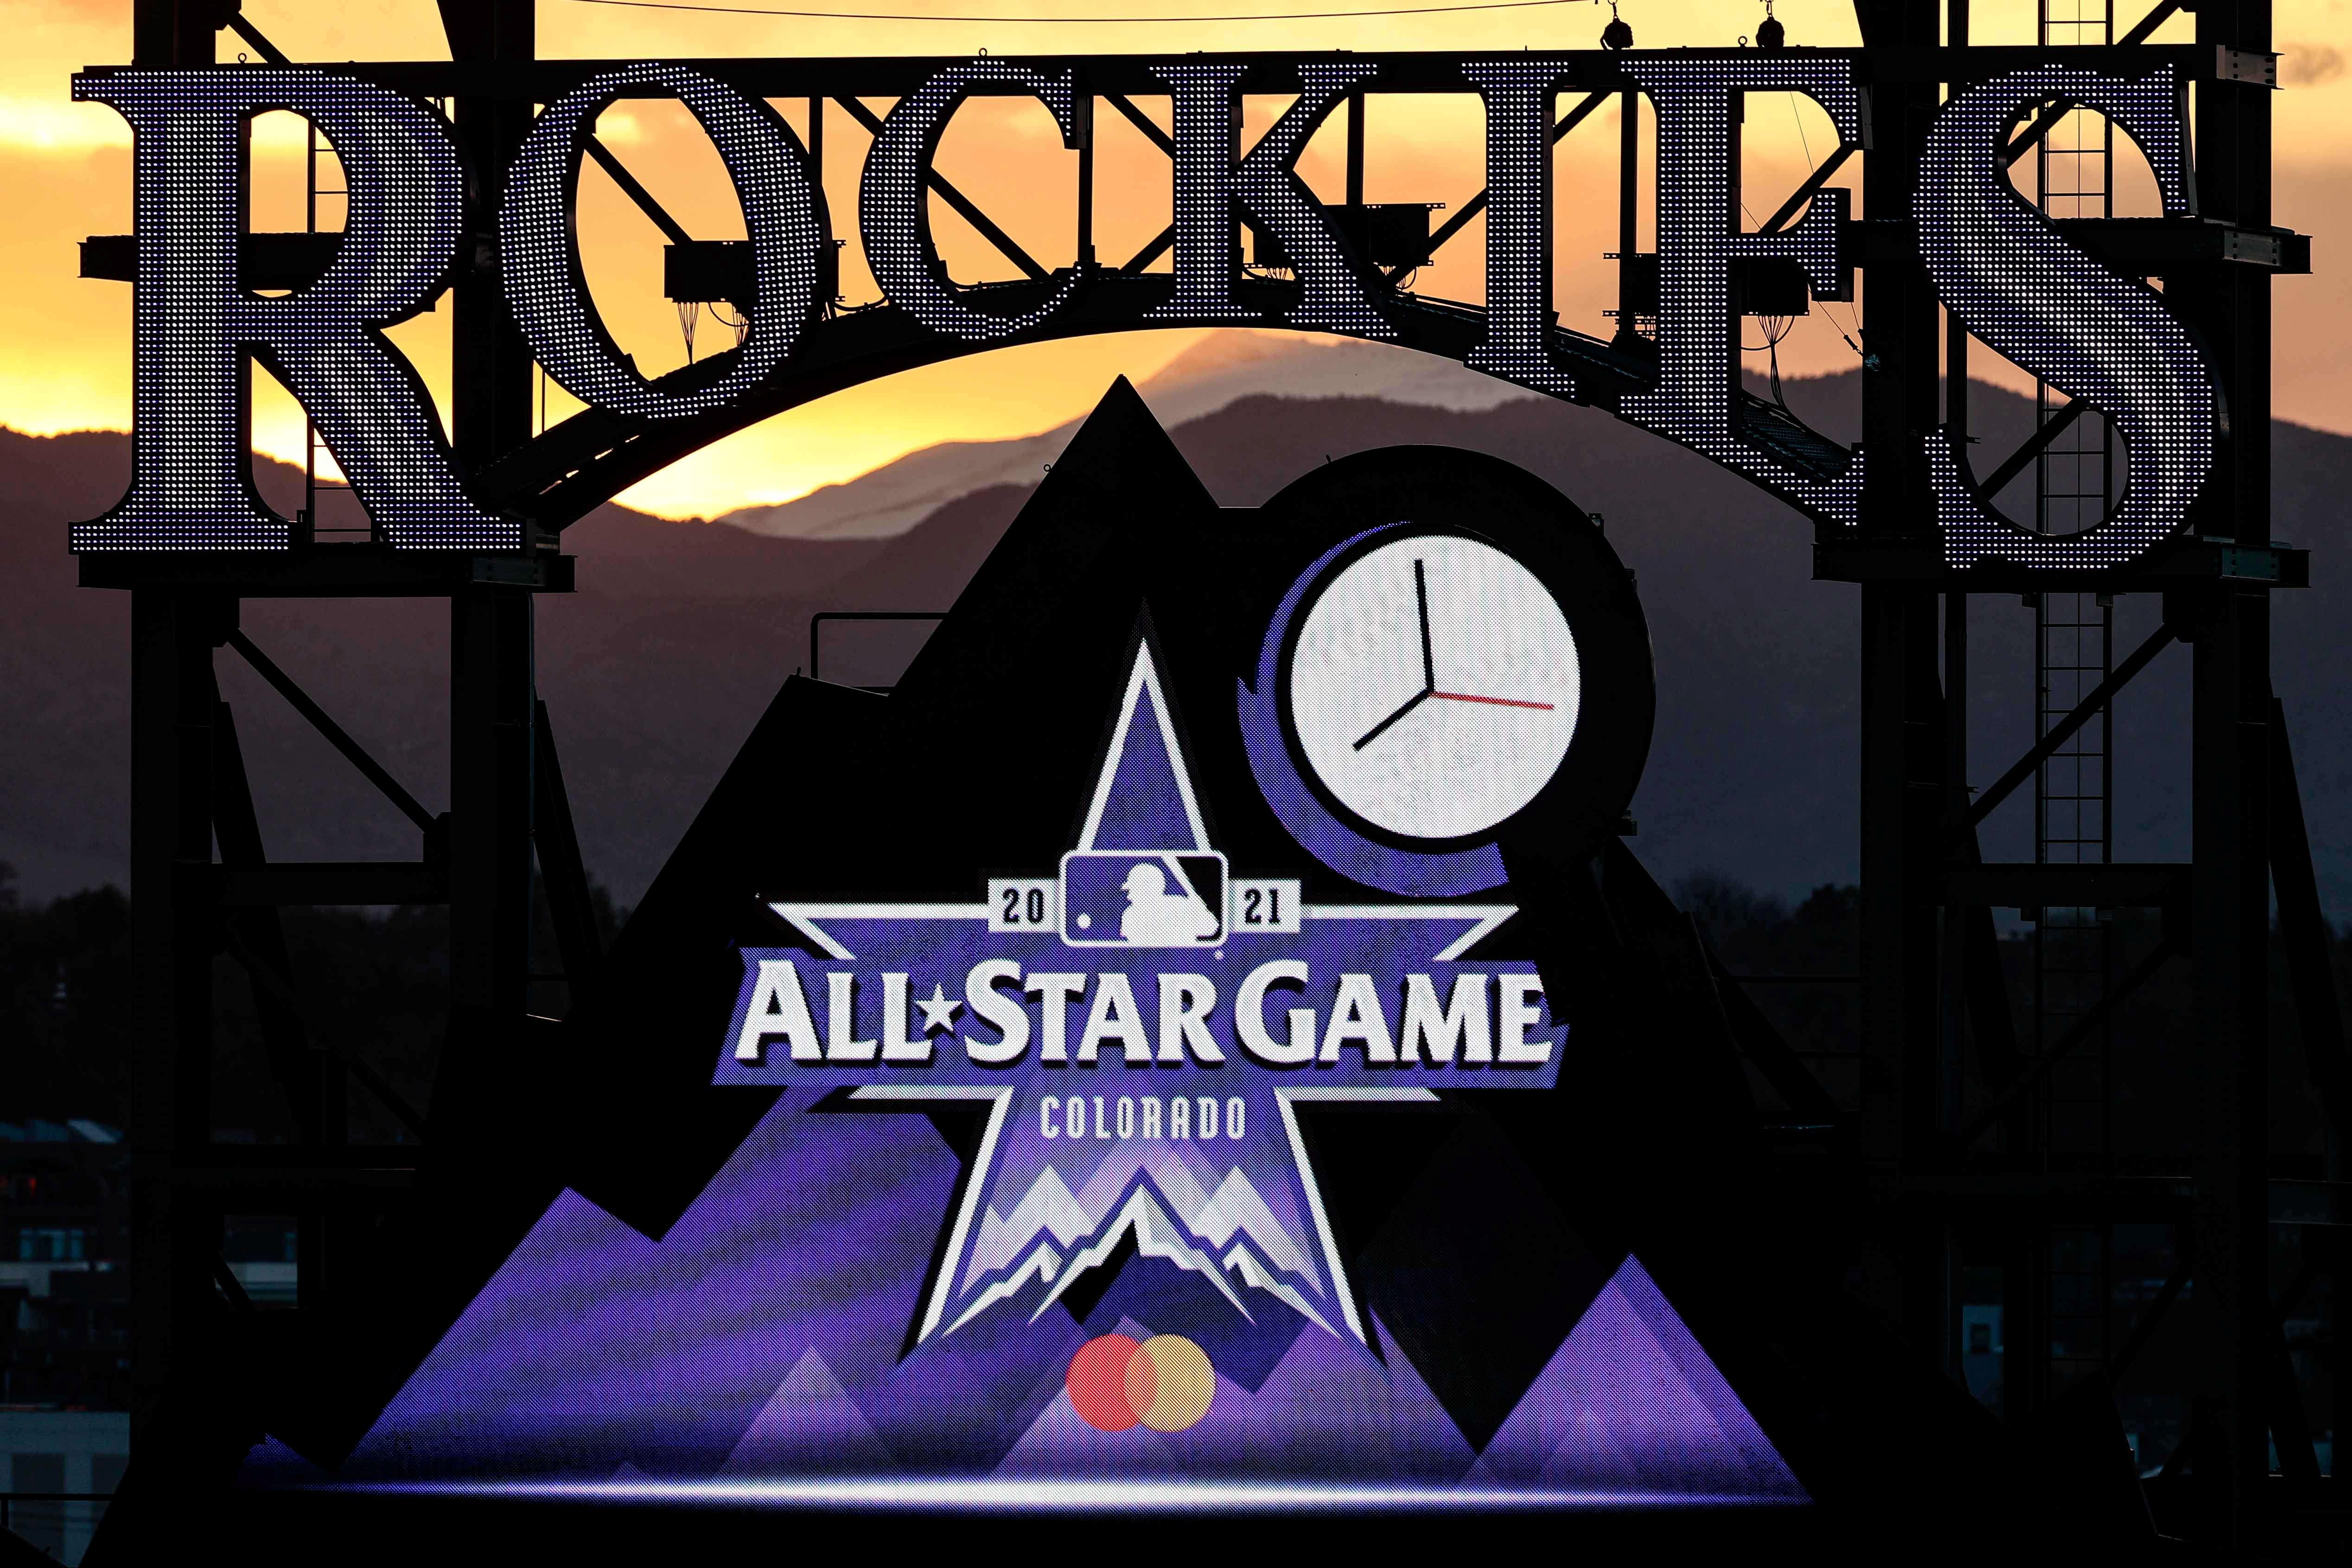 May 13, 2021; Denver, Colorado, USA; Logos for the 2021 MLB All-Star Game are on display during the fourth inning of the game between the Colorado Rockies and the Cincinnati Reds at Coors Field. Mandatory Credit: Isaiah J. Downing-USA TODAY Sports/File Photo